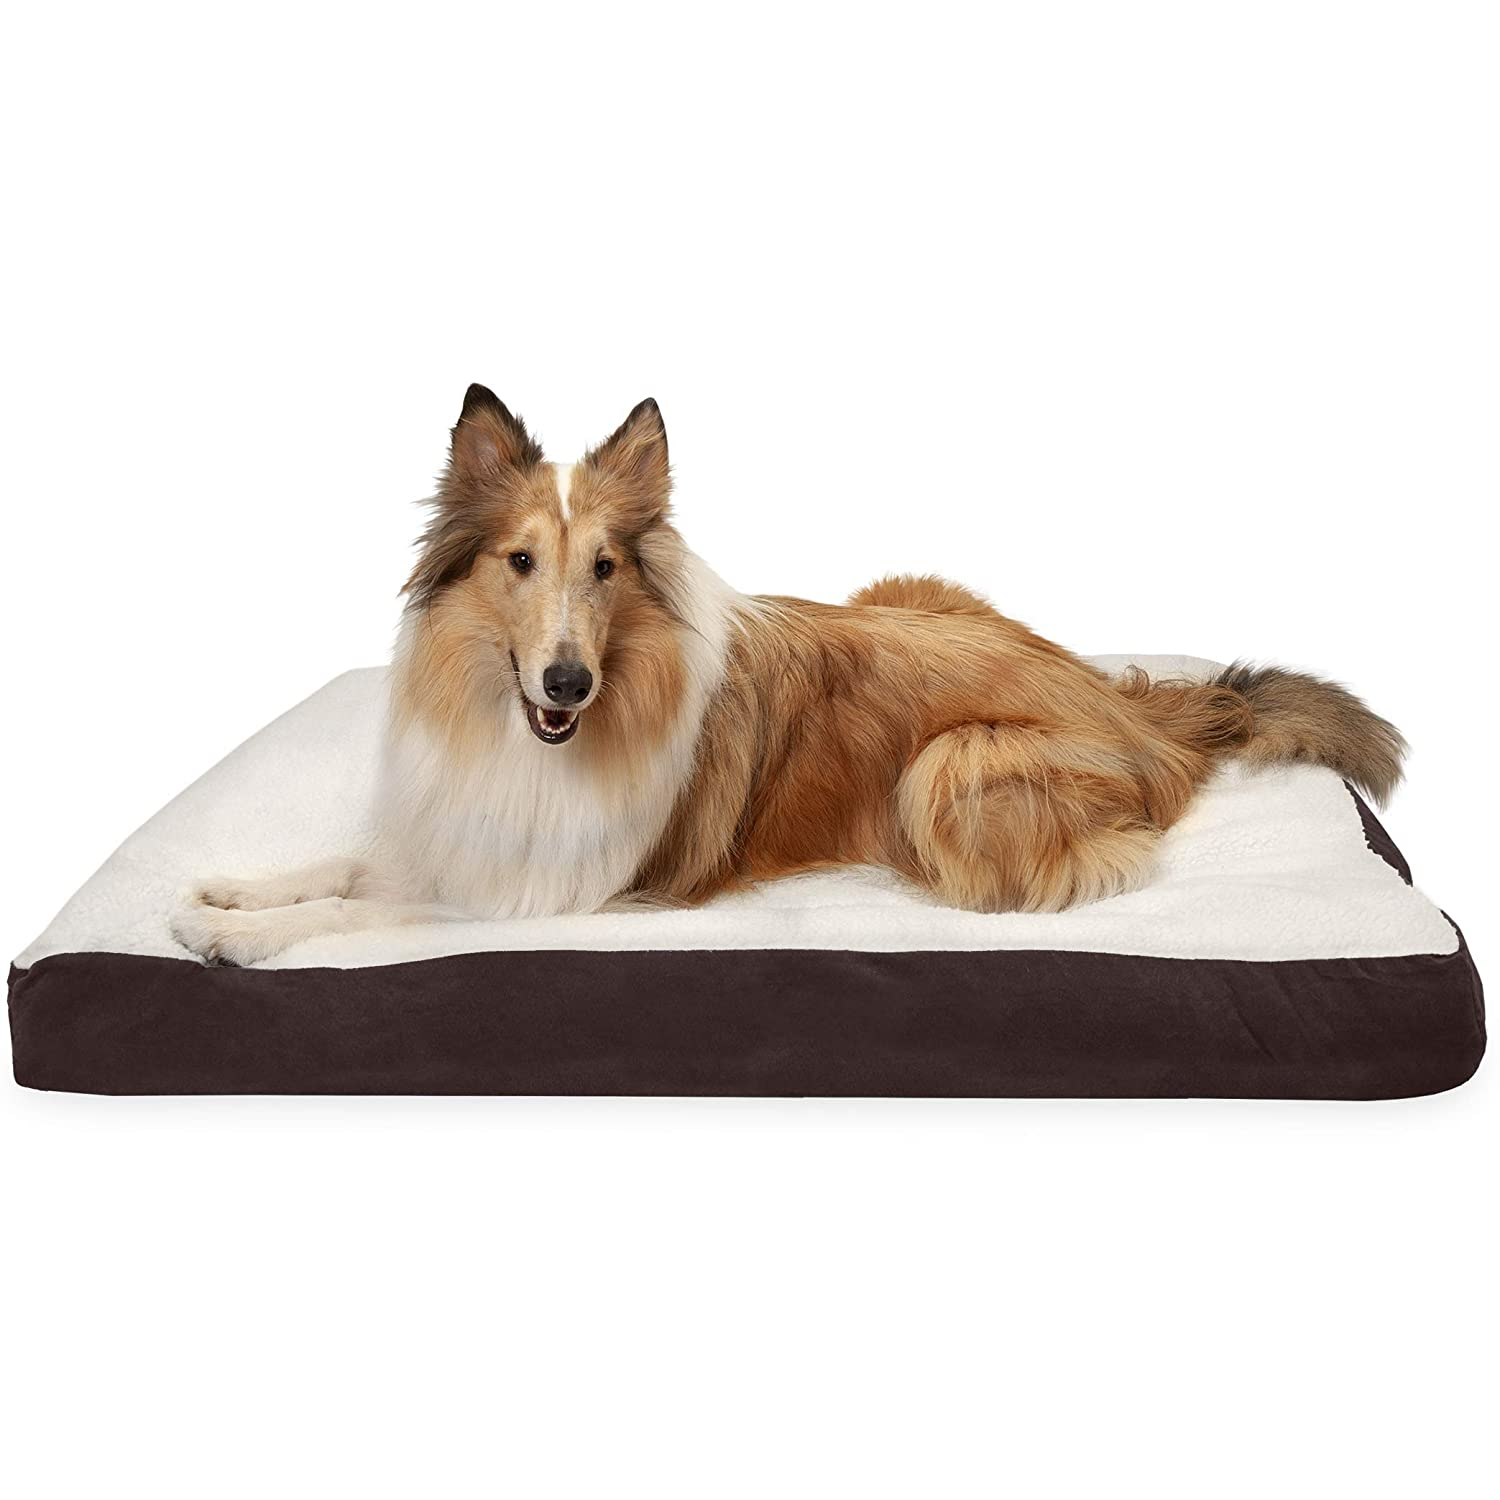 FurHaven Pet Dog Bed   Deluxe Sherpa & Suede Pillow Pet Bed for Dogs & Cats, Espresso, Jumbo